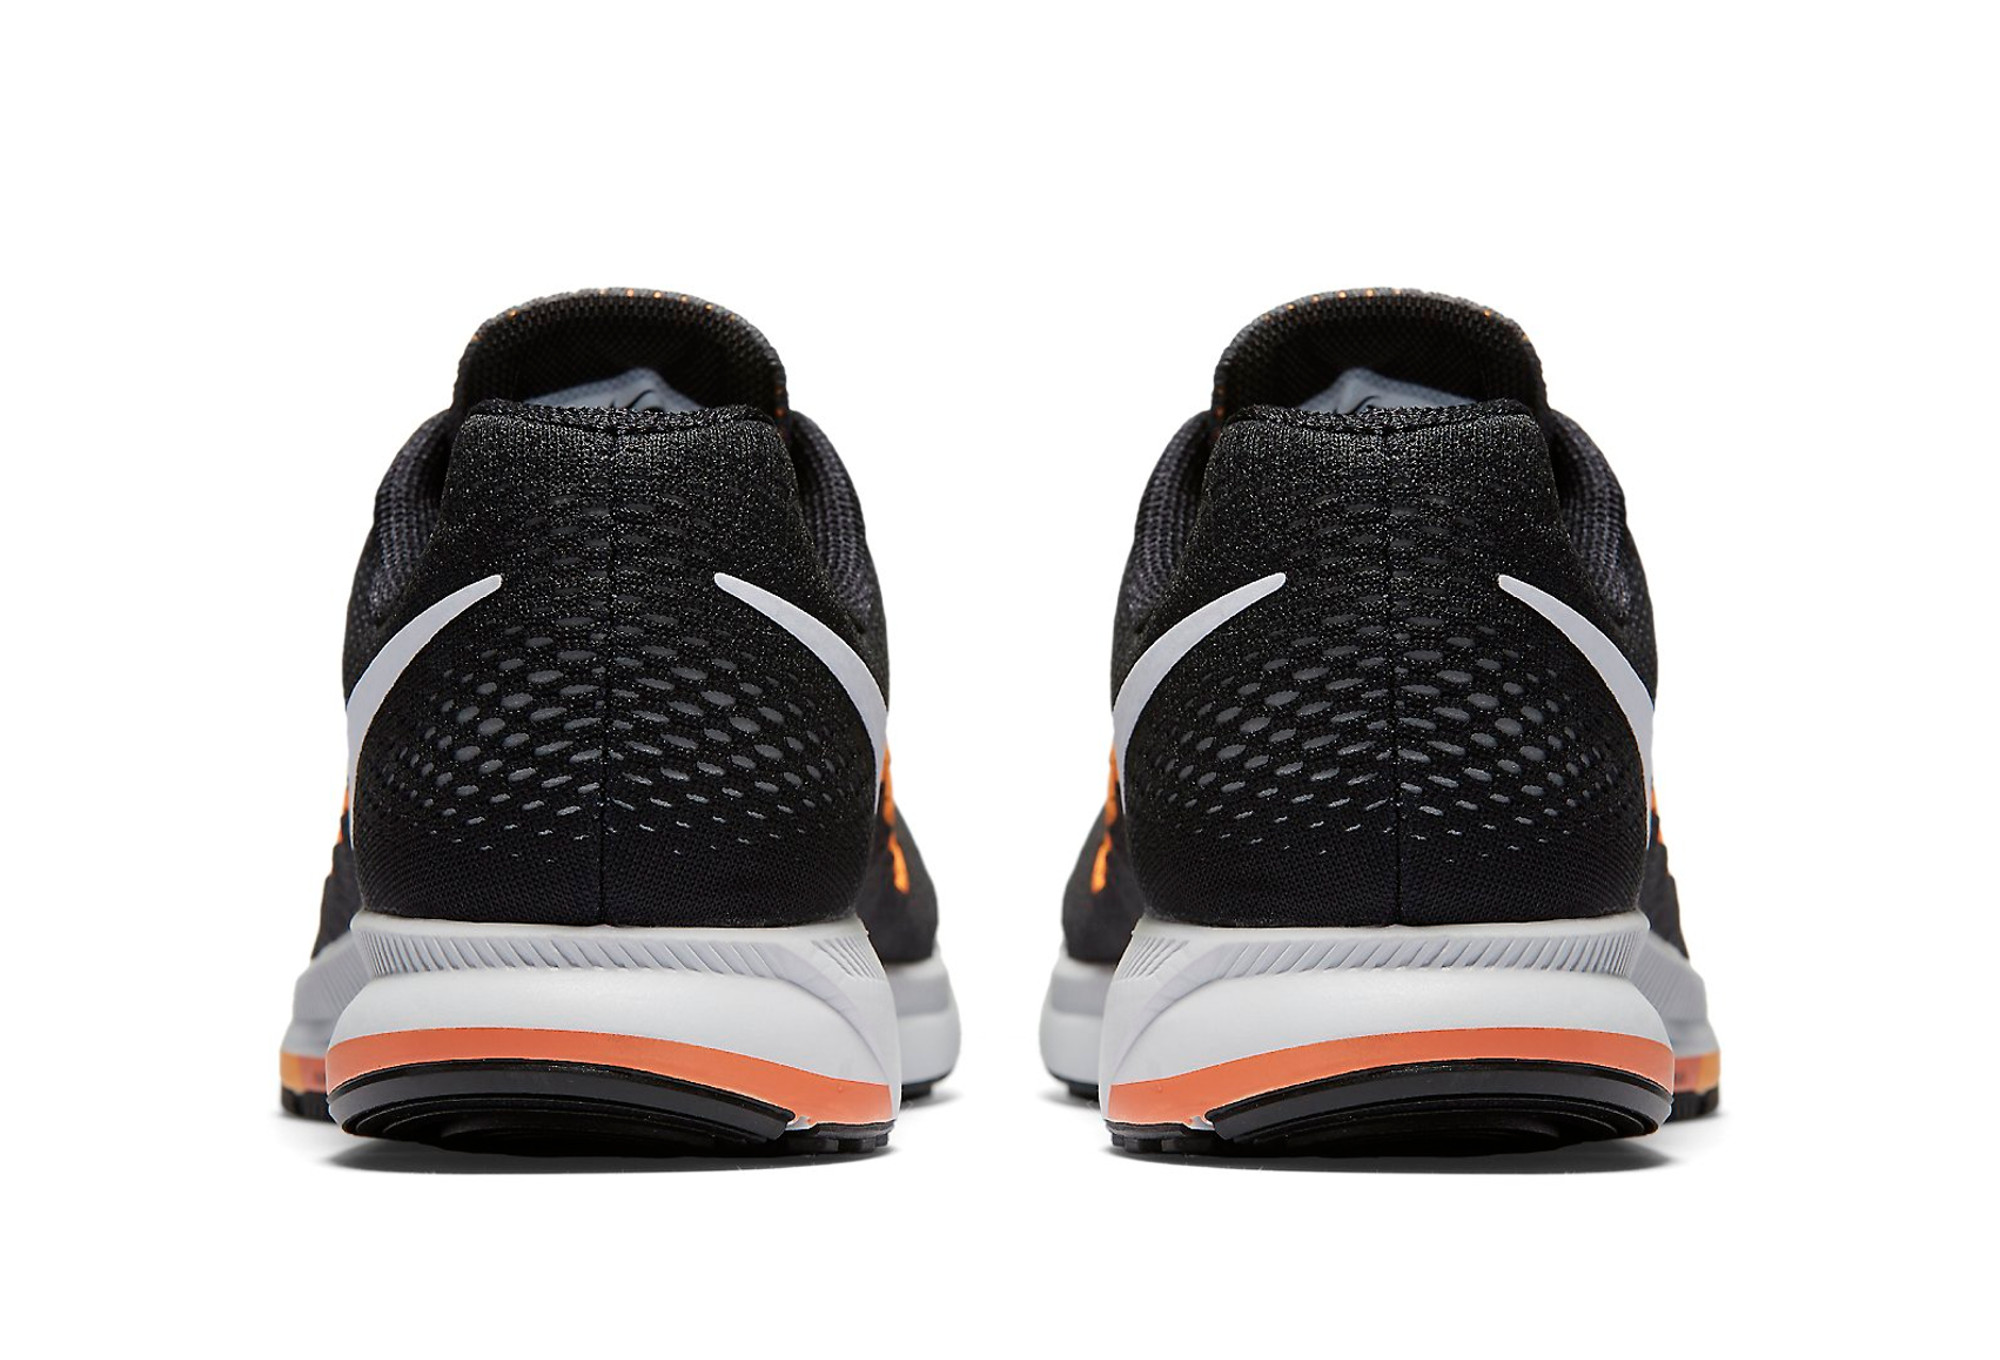 Chaussures running nike zoom pegasus 33, vente occasion